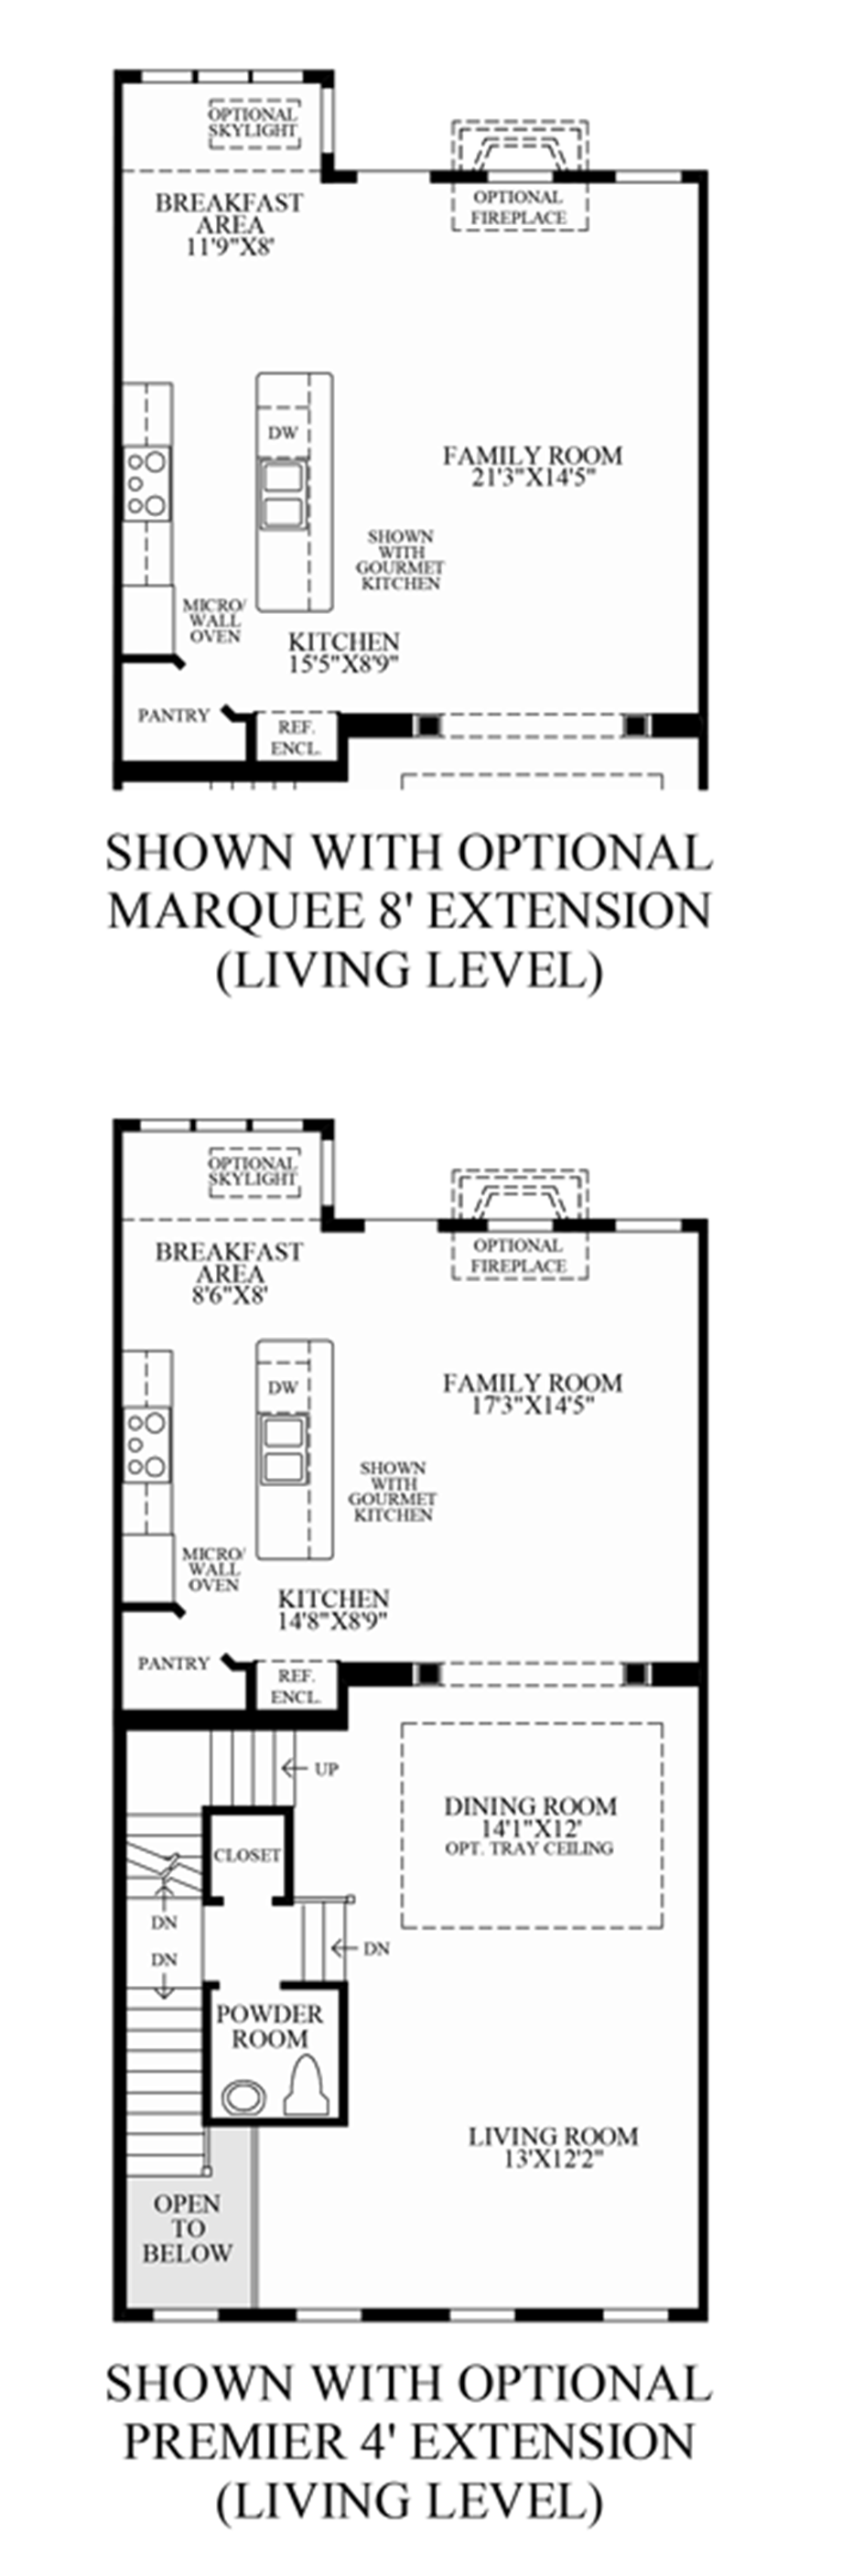 Optional Extensions Living Level Floor Plan